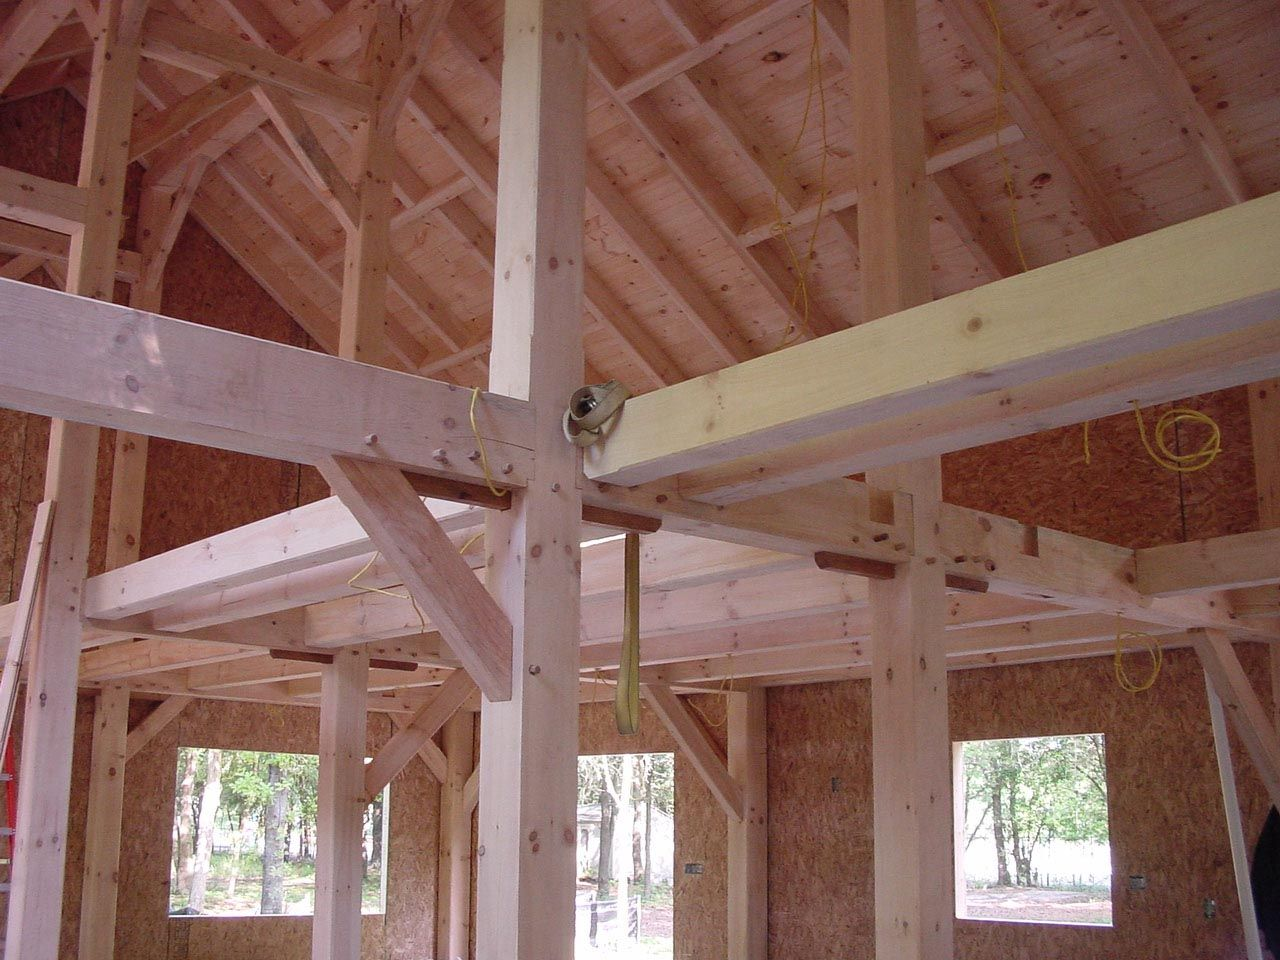 planning wiring in timber frame homes is important and not difficult if you follow a few simple rules  [ 1280 x 960 Pixel ]